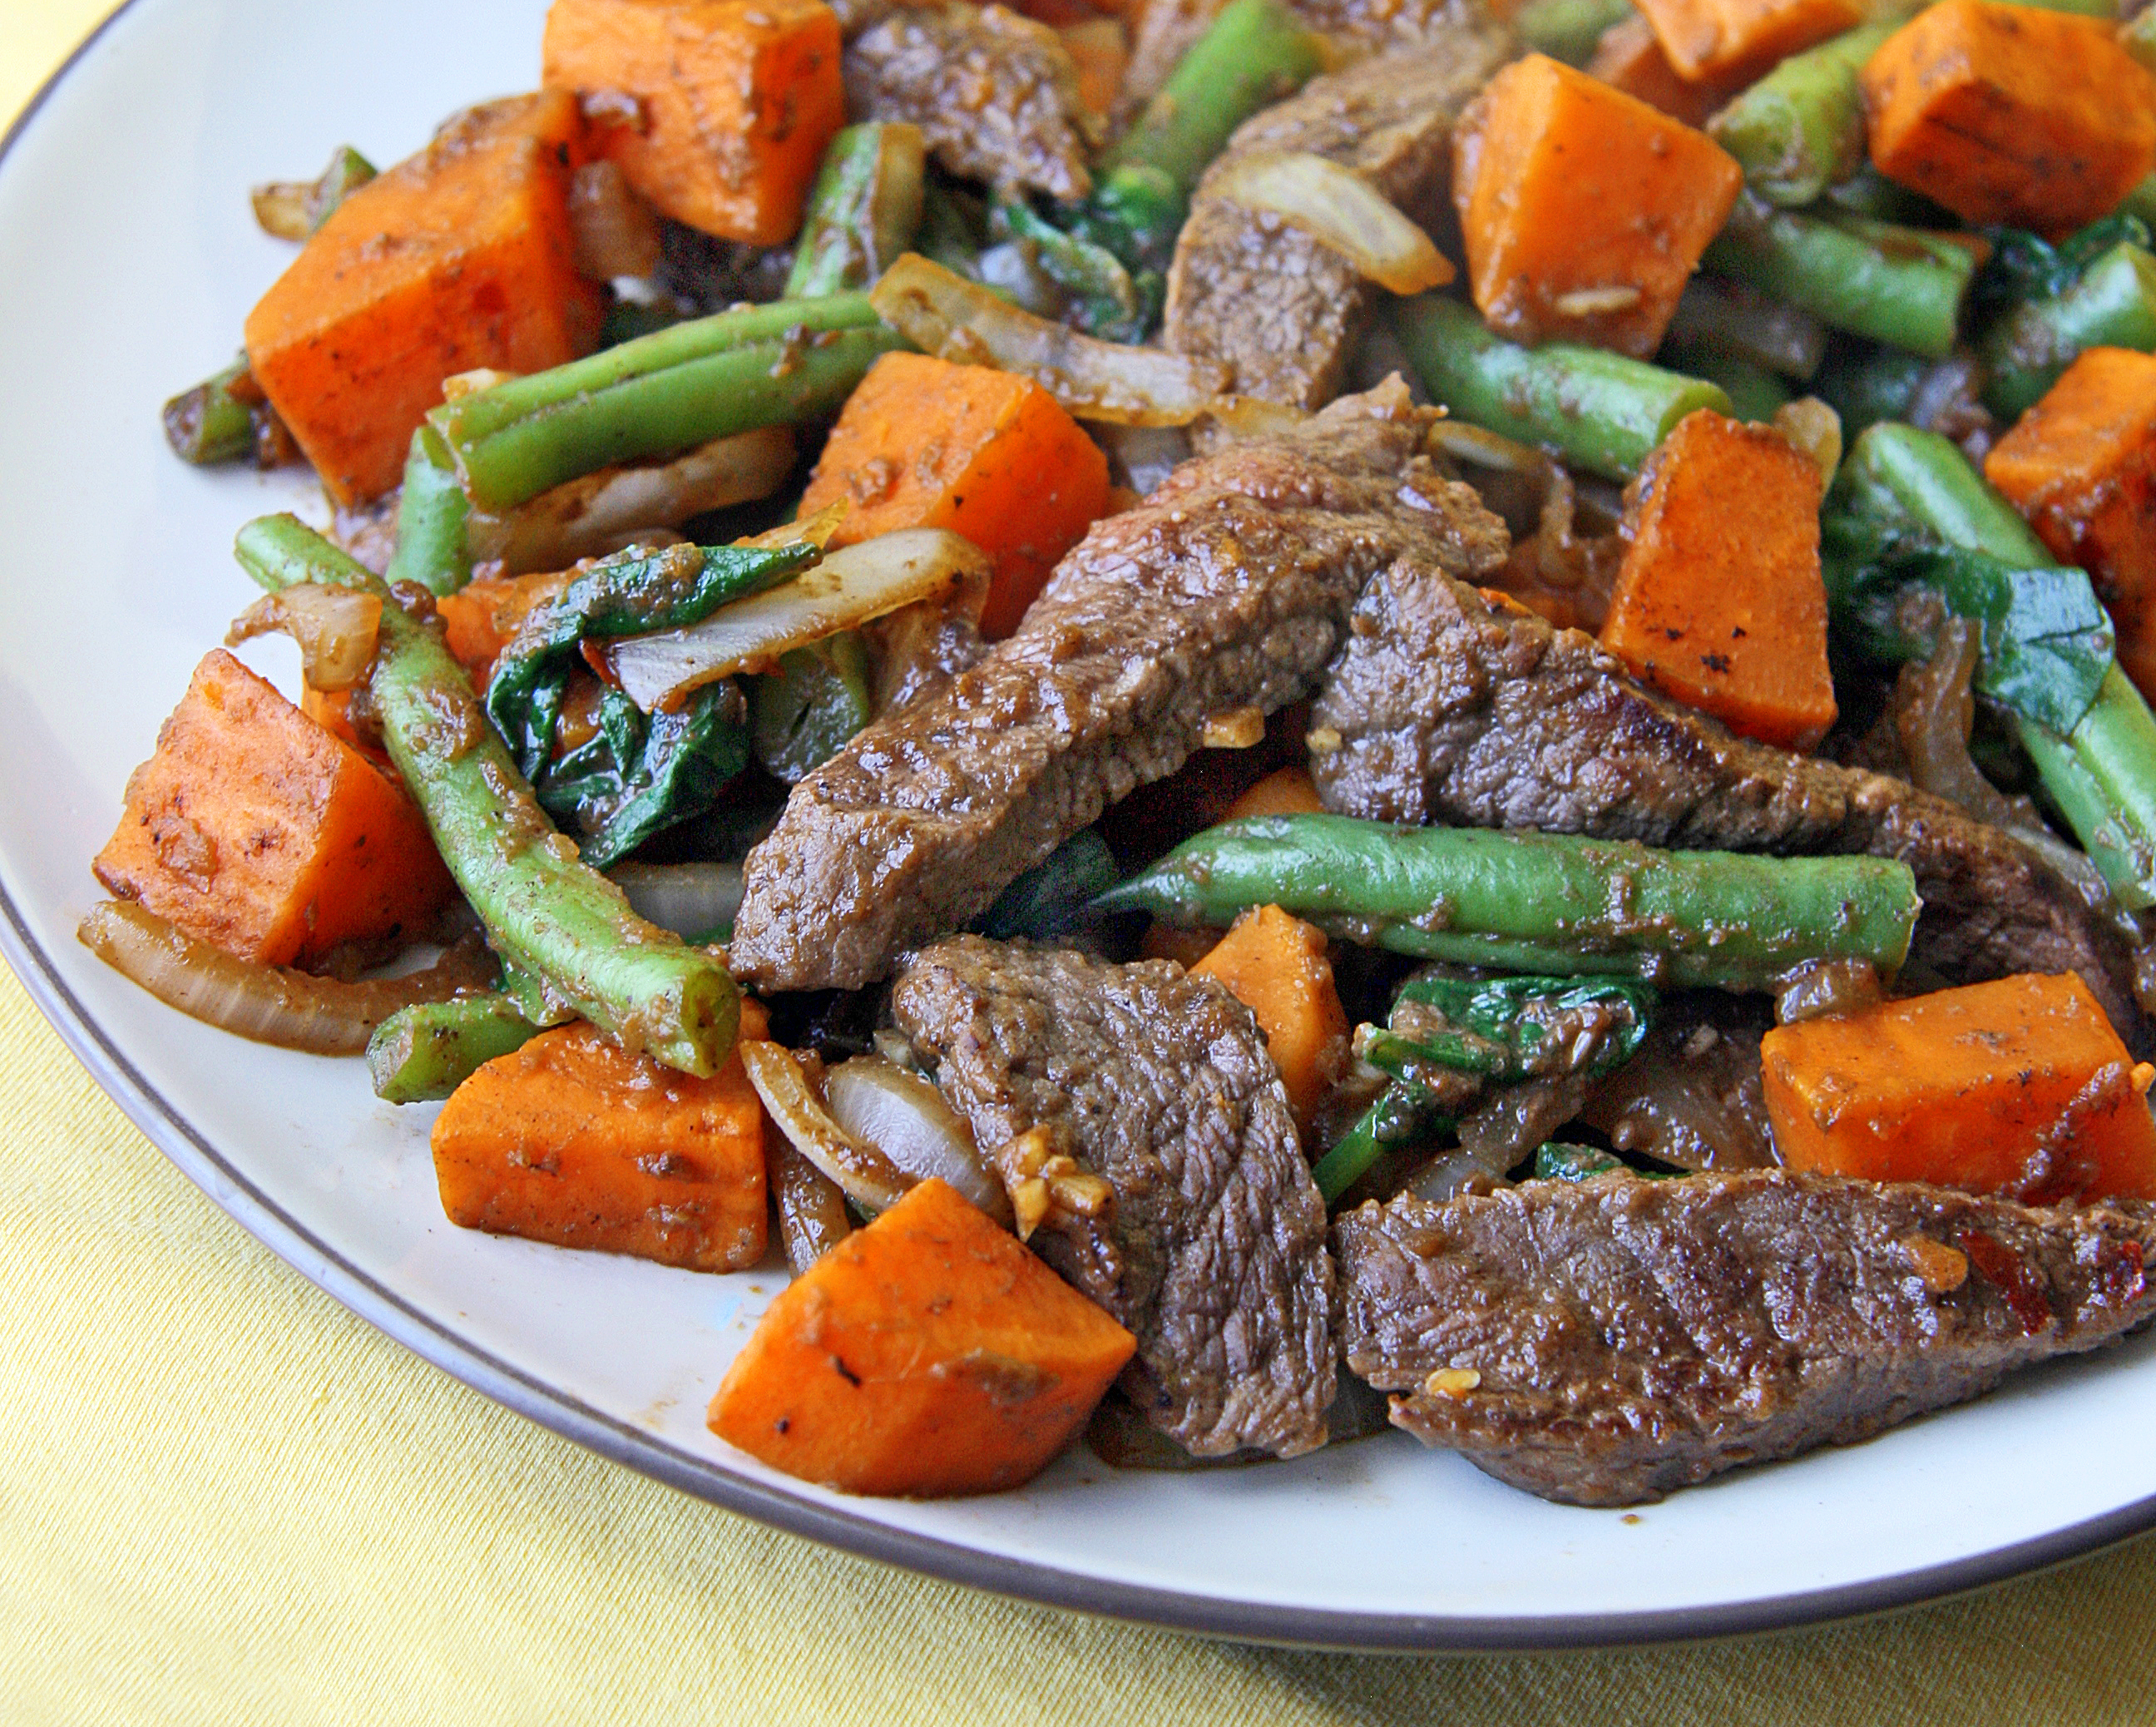 Steak Sweet Potato Veg